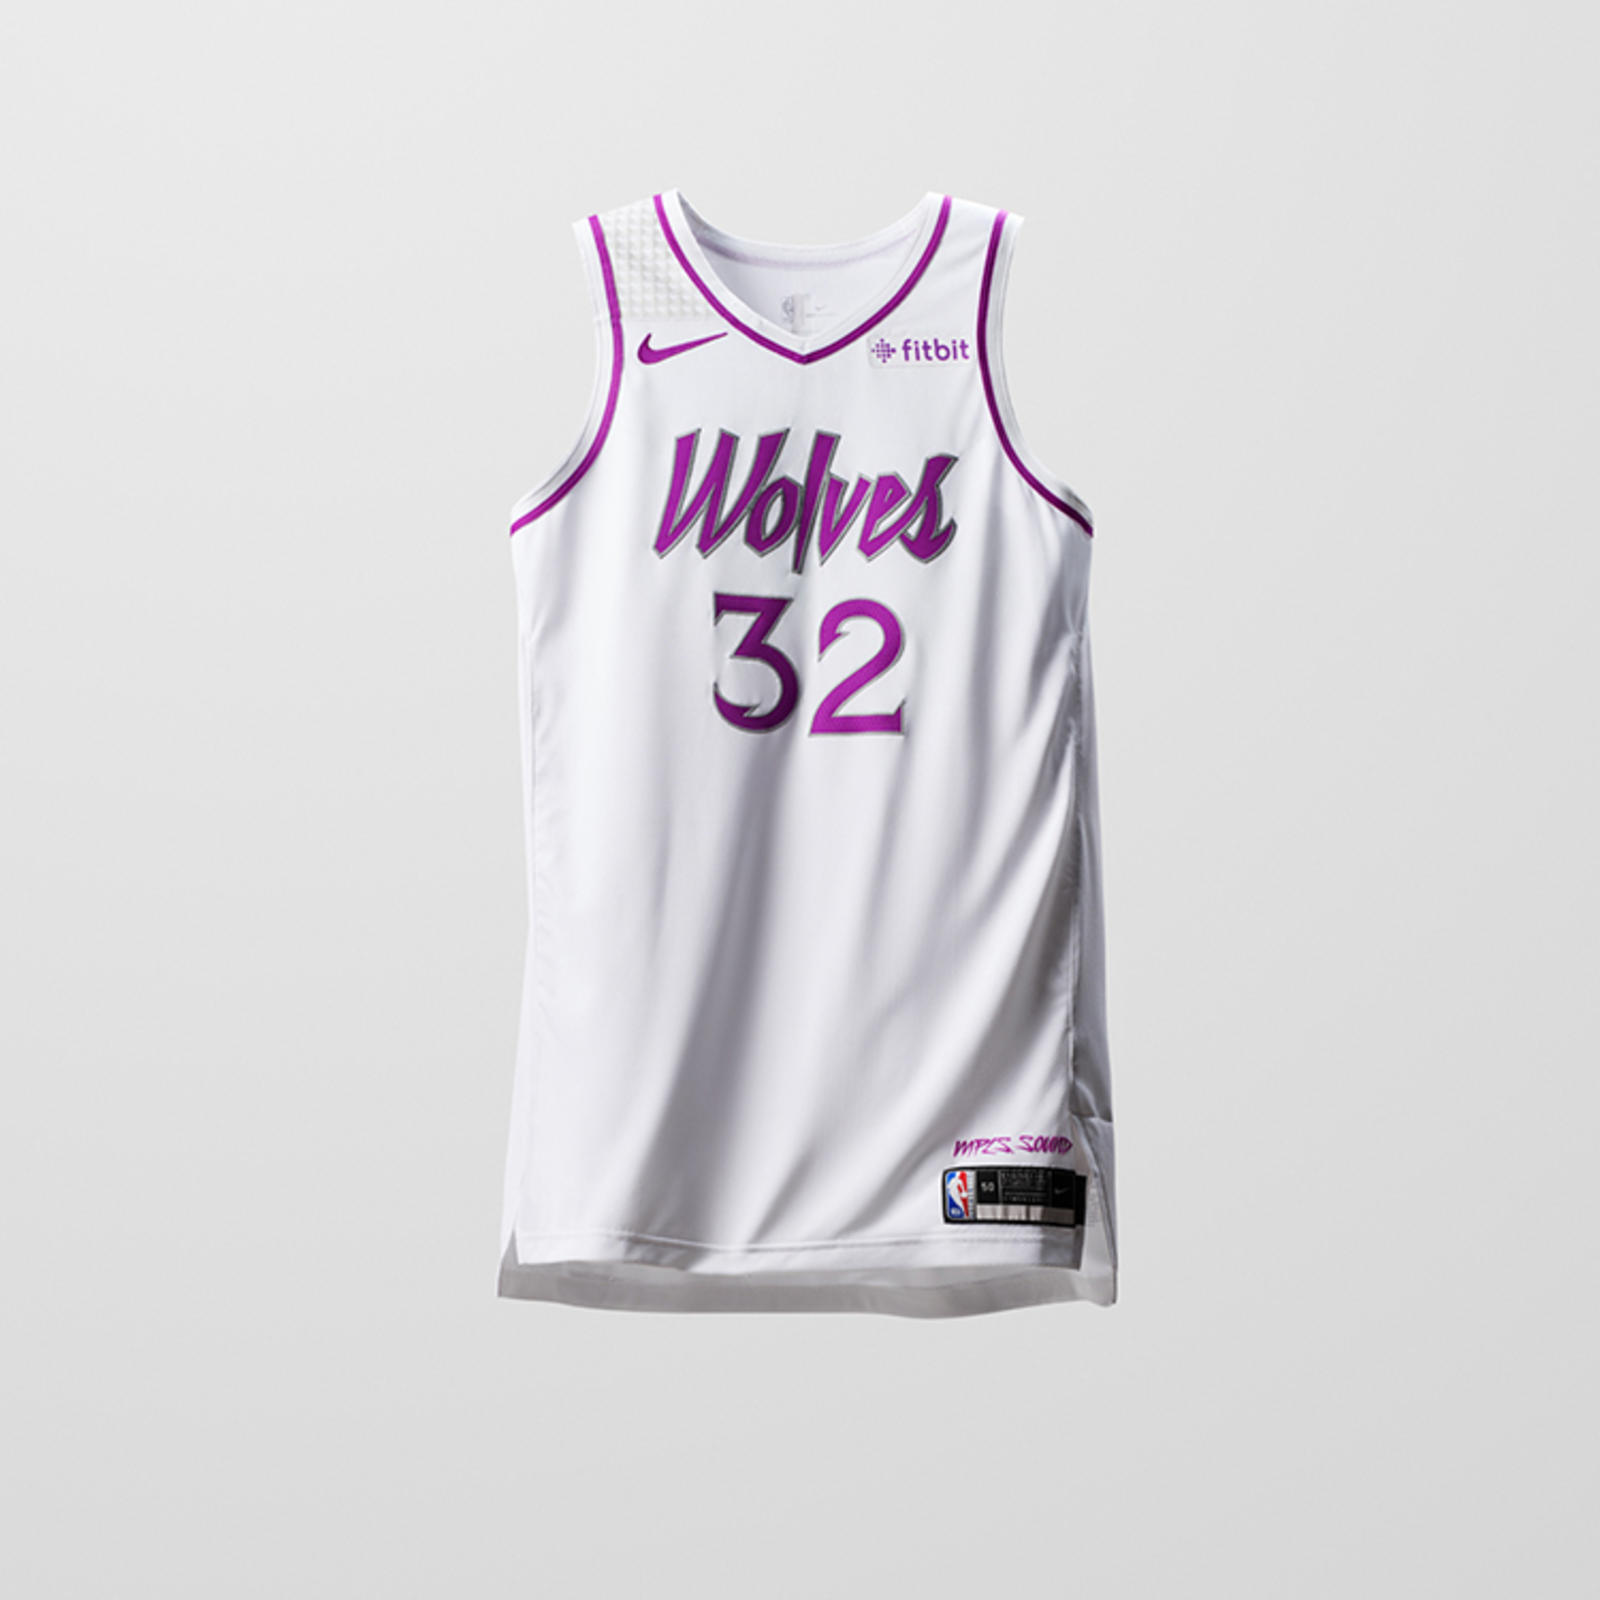 c7944a987536 Introducing the Nike x NBA EARNED Edition Uniforms 14